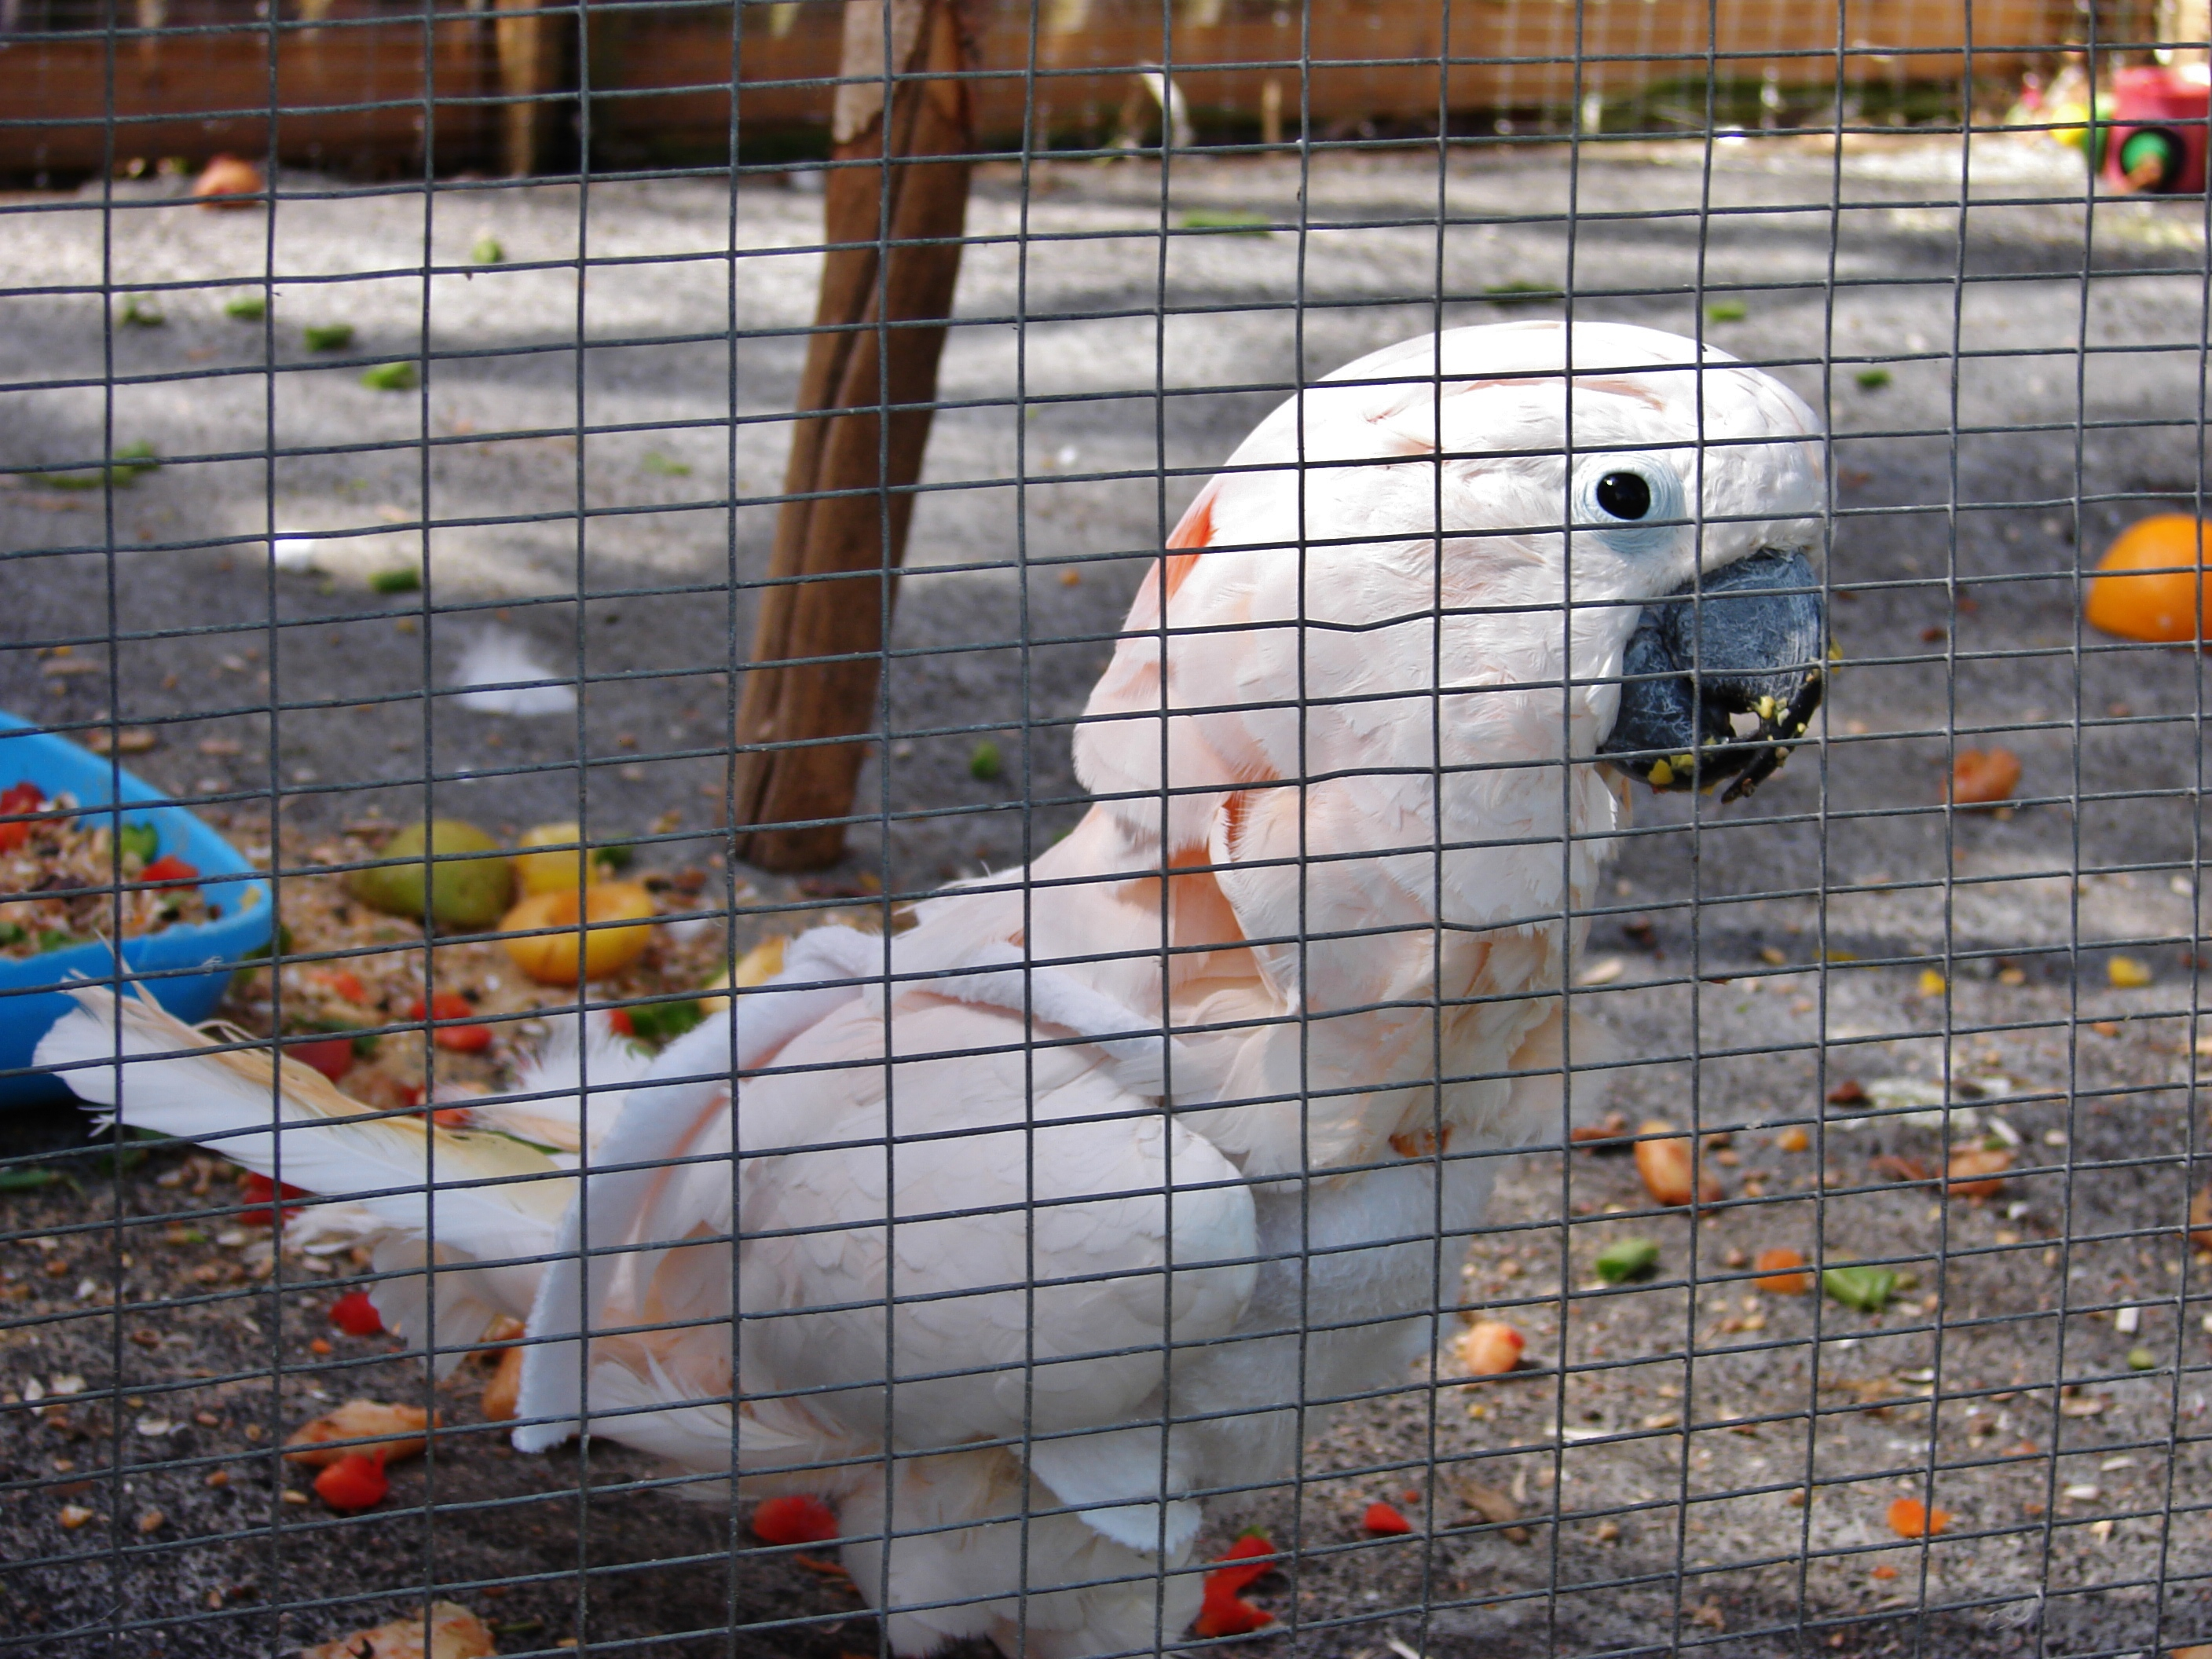 Pros and Cons of Buying a Parrot – Three Birds and a Cloud